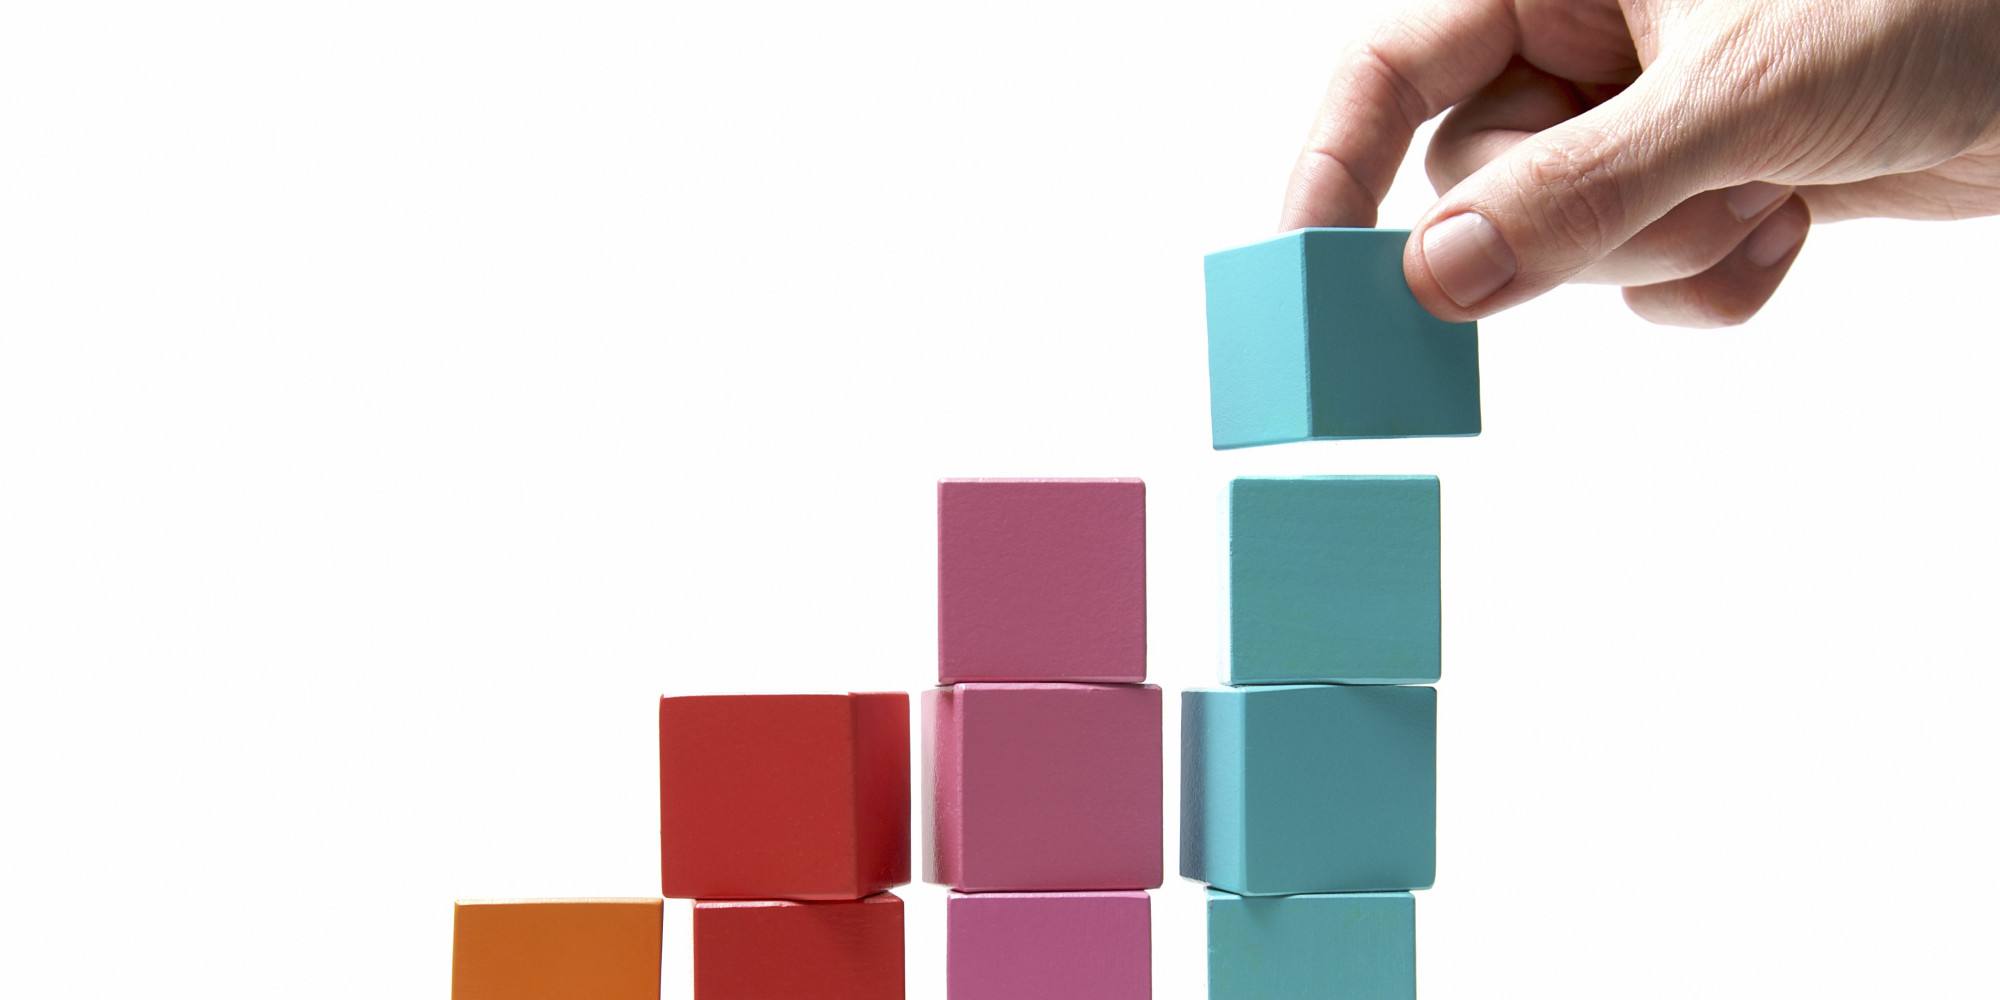 Habit Stacking How To Build New Habits By Taking